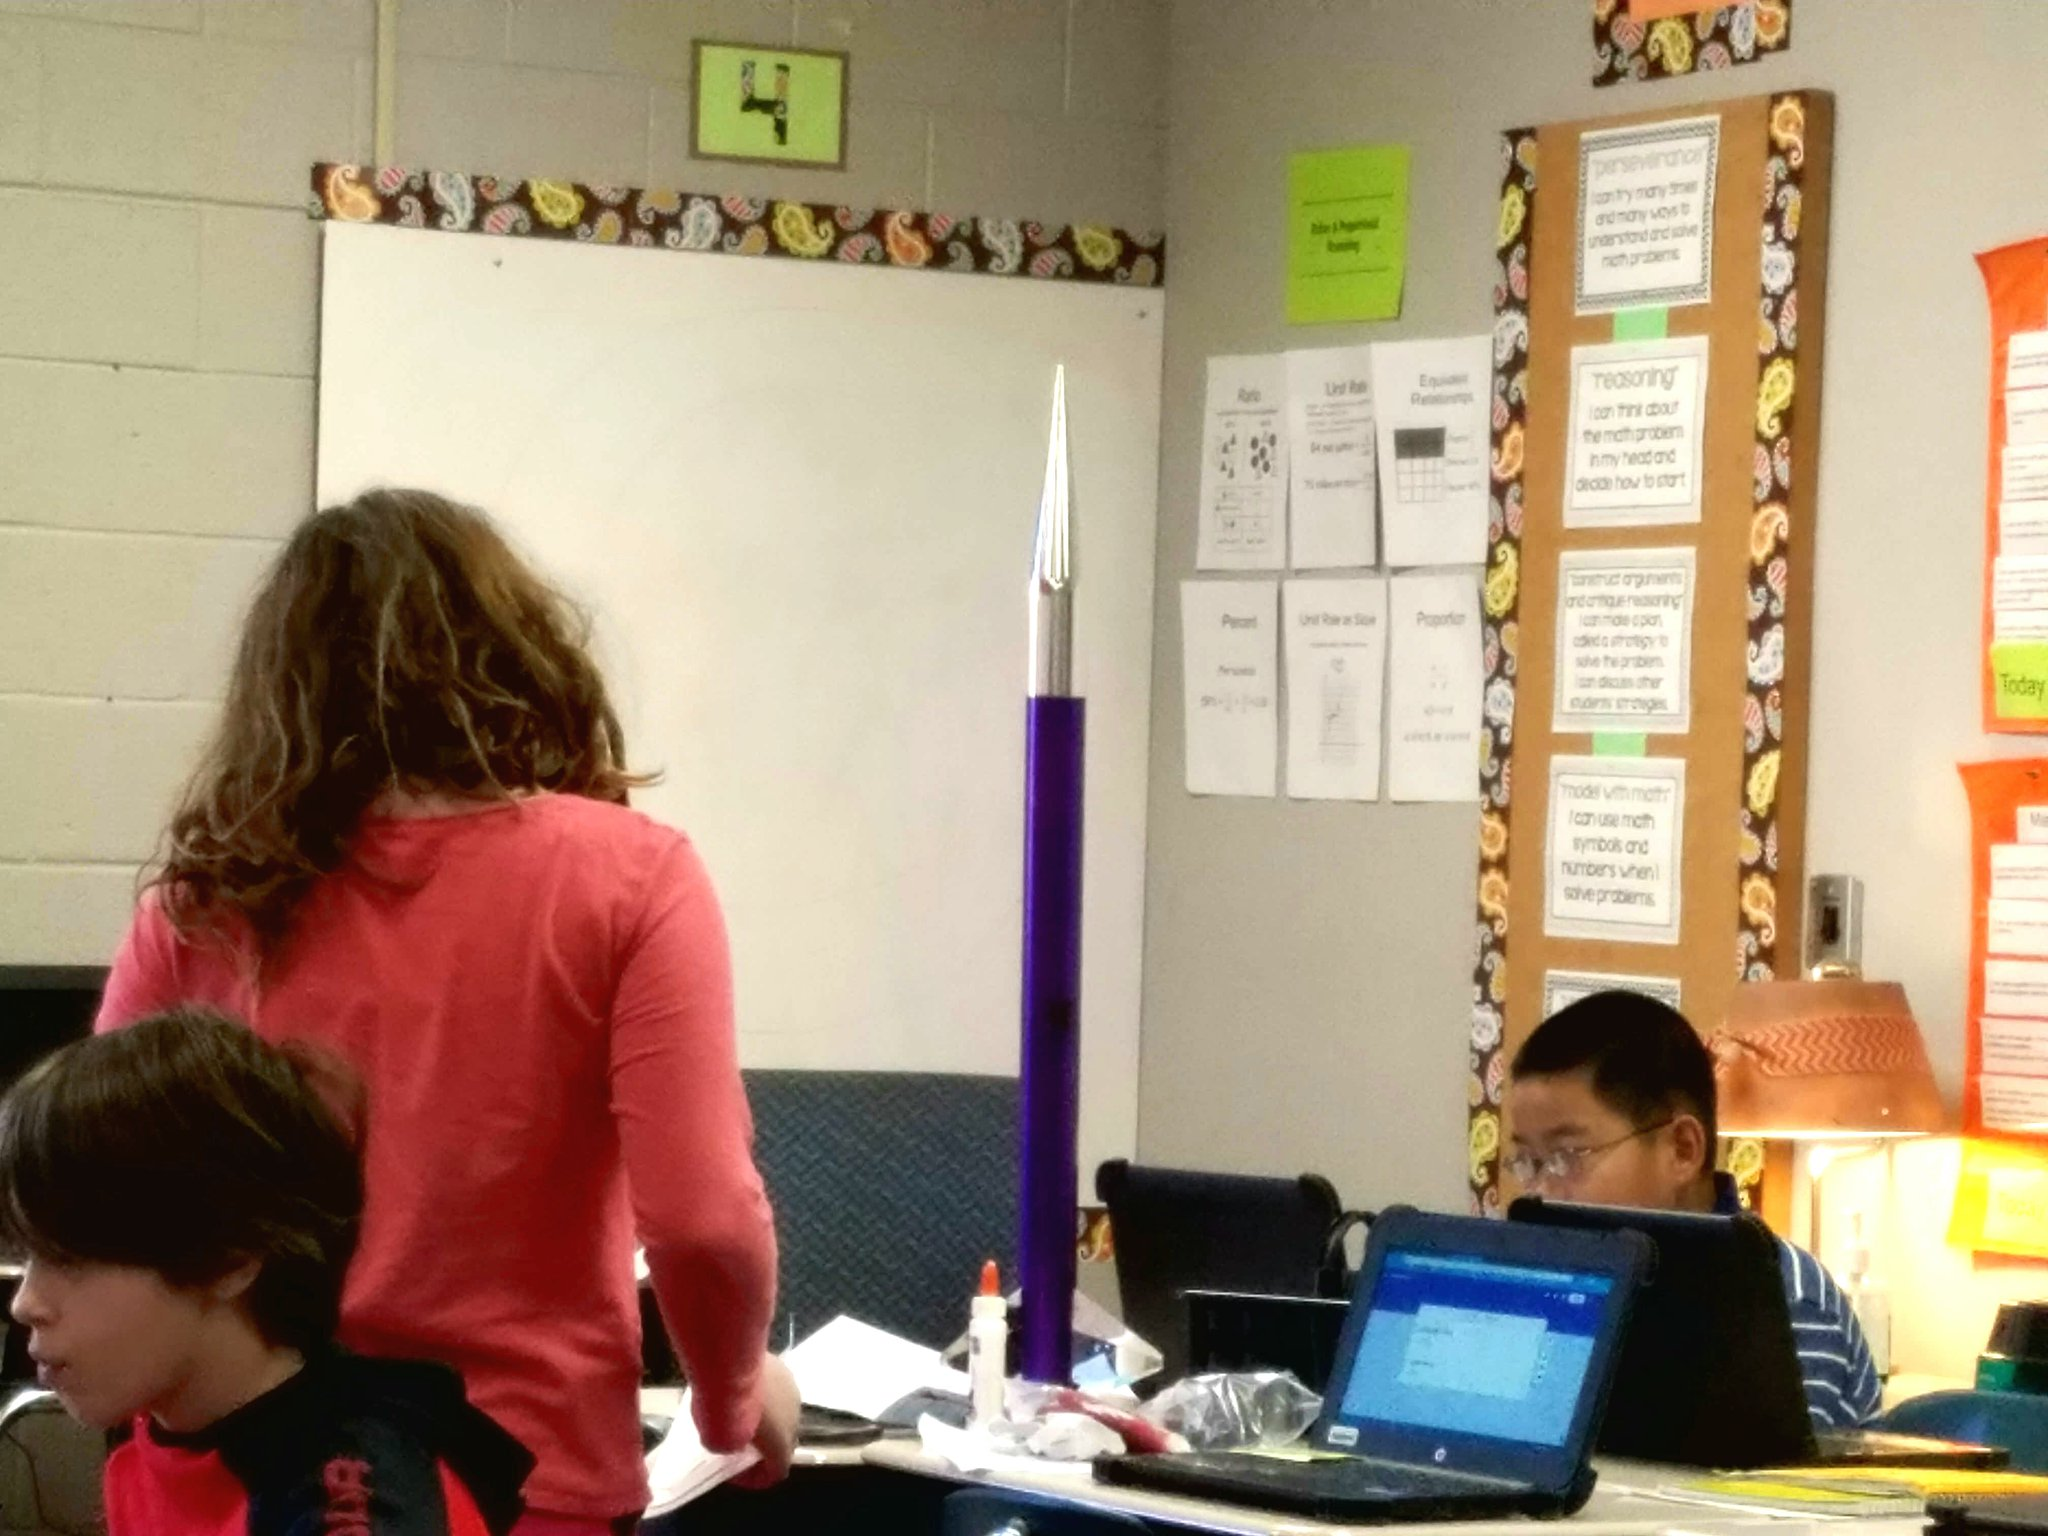 I see a young lady shooting for the moon with her @RockQuarryMS Innovation Day rocket project.  #RQinnovates #TCSlearns https://t.co/Zlm5uViZT0